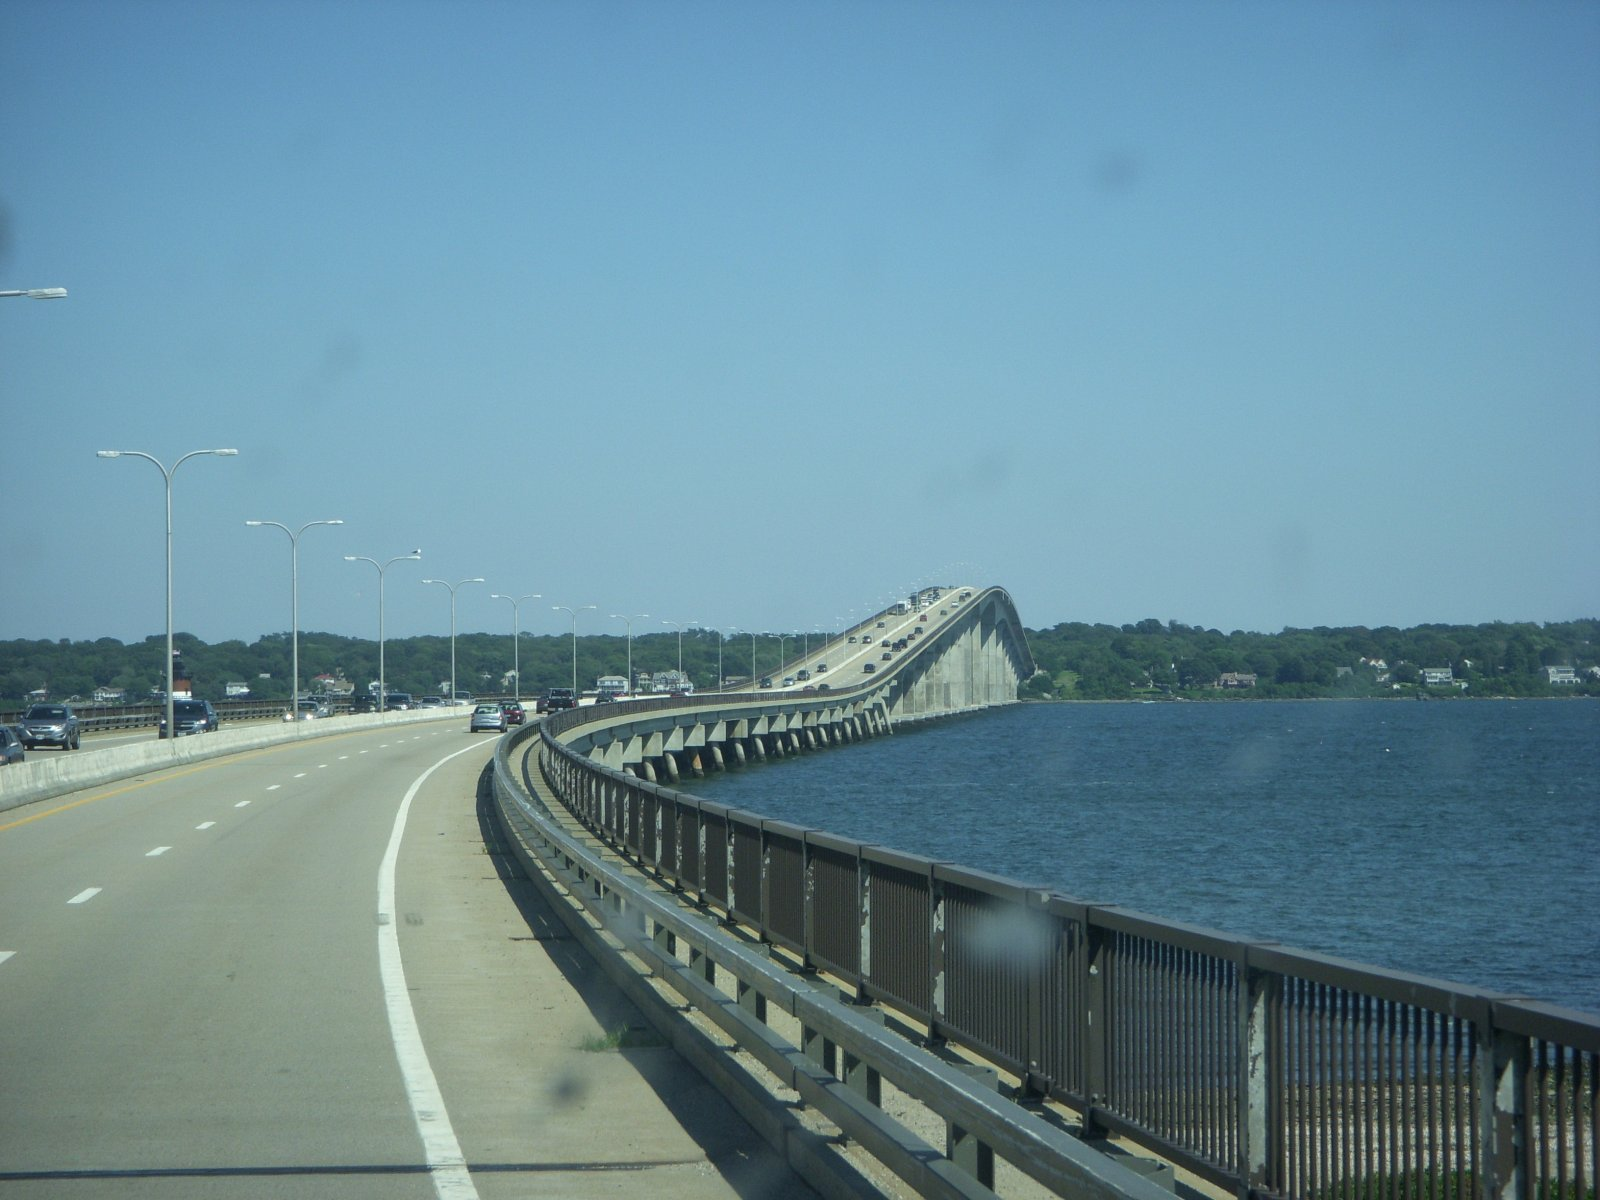 Click image for larger version  Name:Newport,RI. Aug2011 062.jpg Views:68 Size:215.4 KB ID:137977